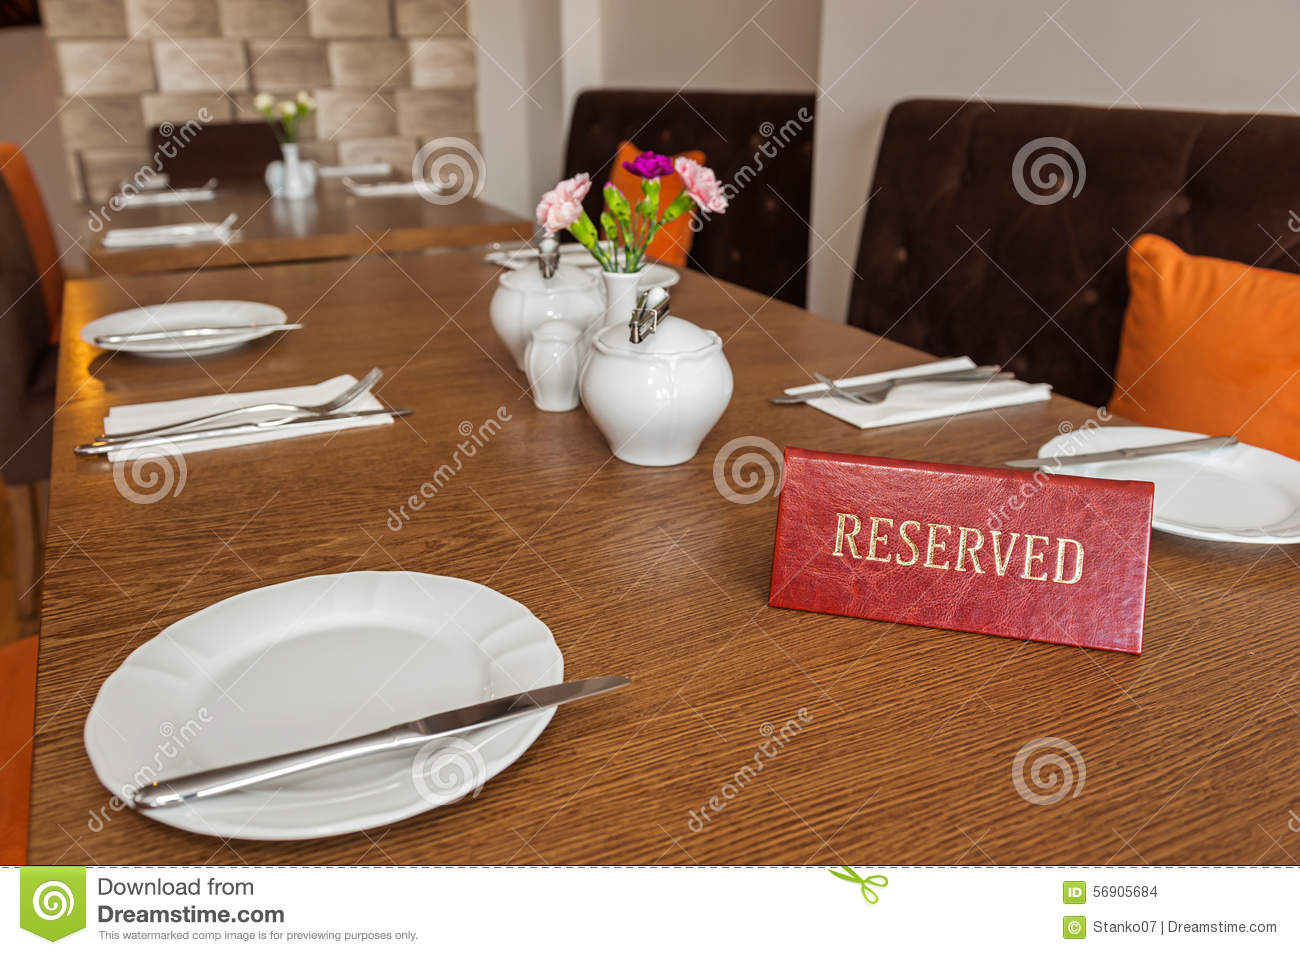 Reserved Table Stock Photo - Image: 56905684